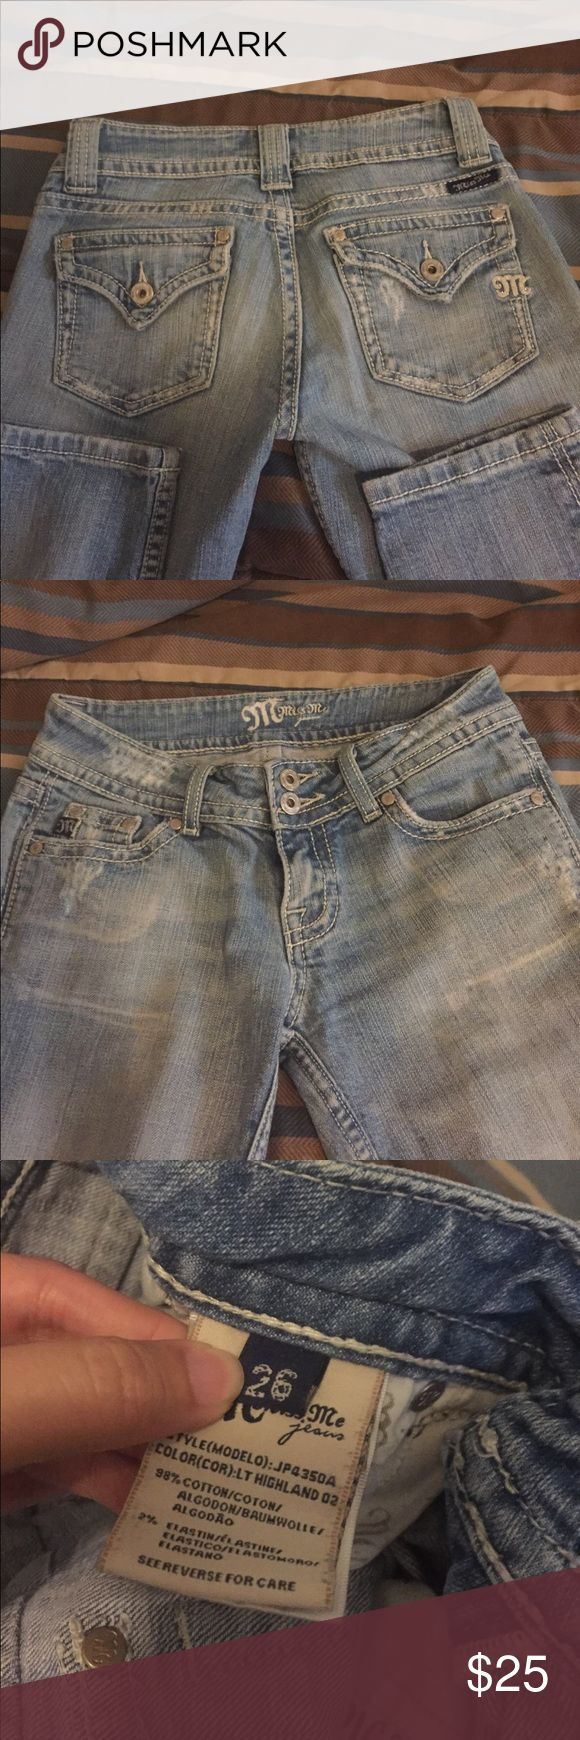 Miss me capris Super cute miss me capris. Just a little too snug for my liking. Slight manufacture distressing. Size 26 Miss Me Jeans Ankle & Cropped